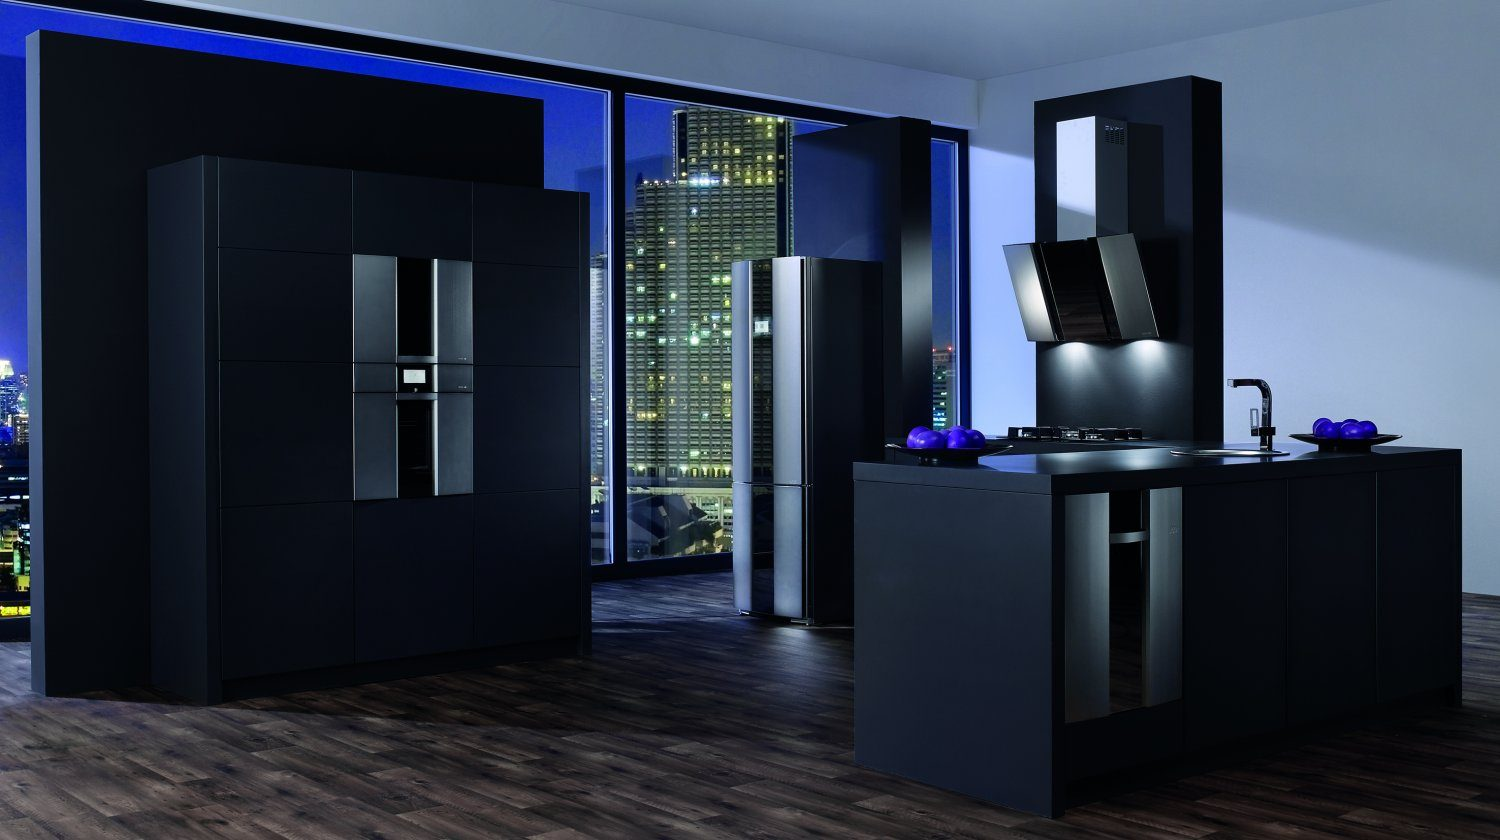 gorenje takes part in pininfarina exhibition in london gorenje. Black Bedroom Furniture Sets. Home Design Ideas